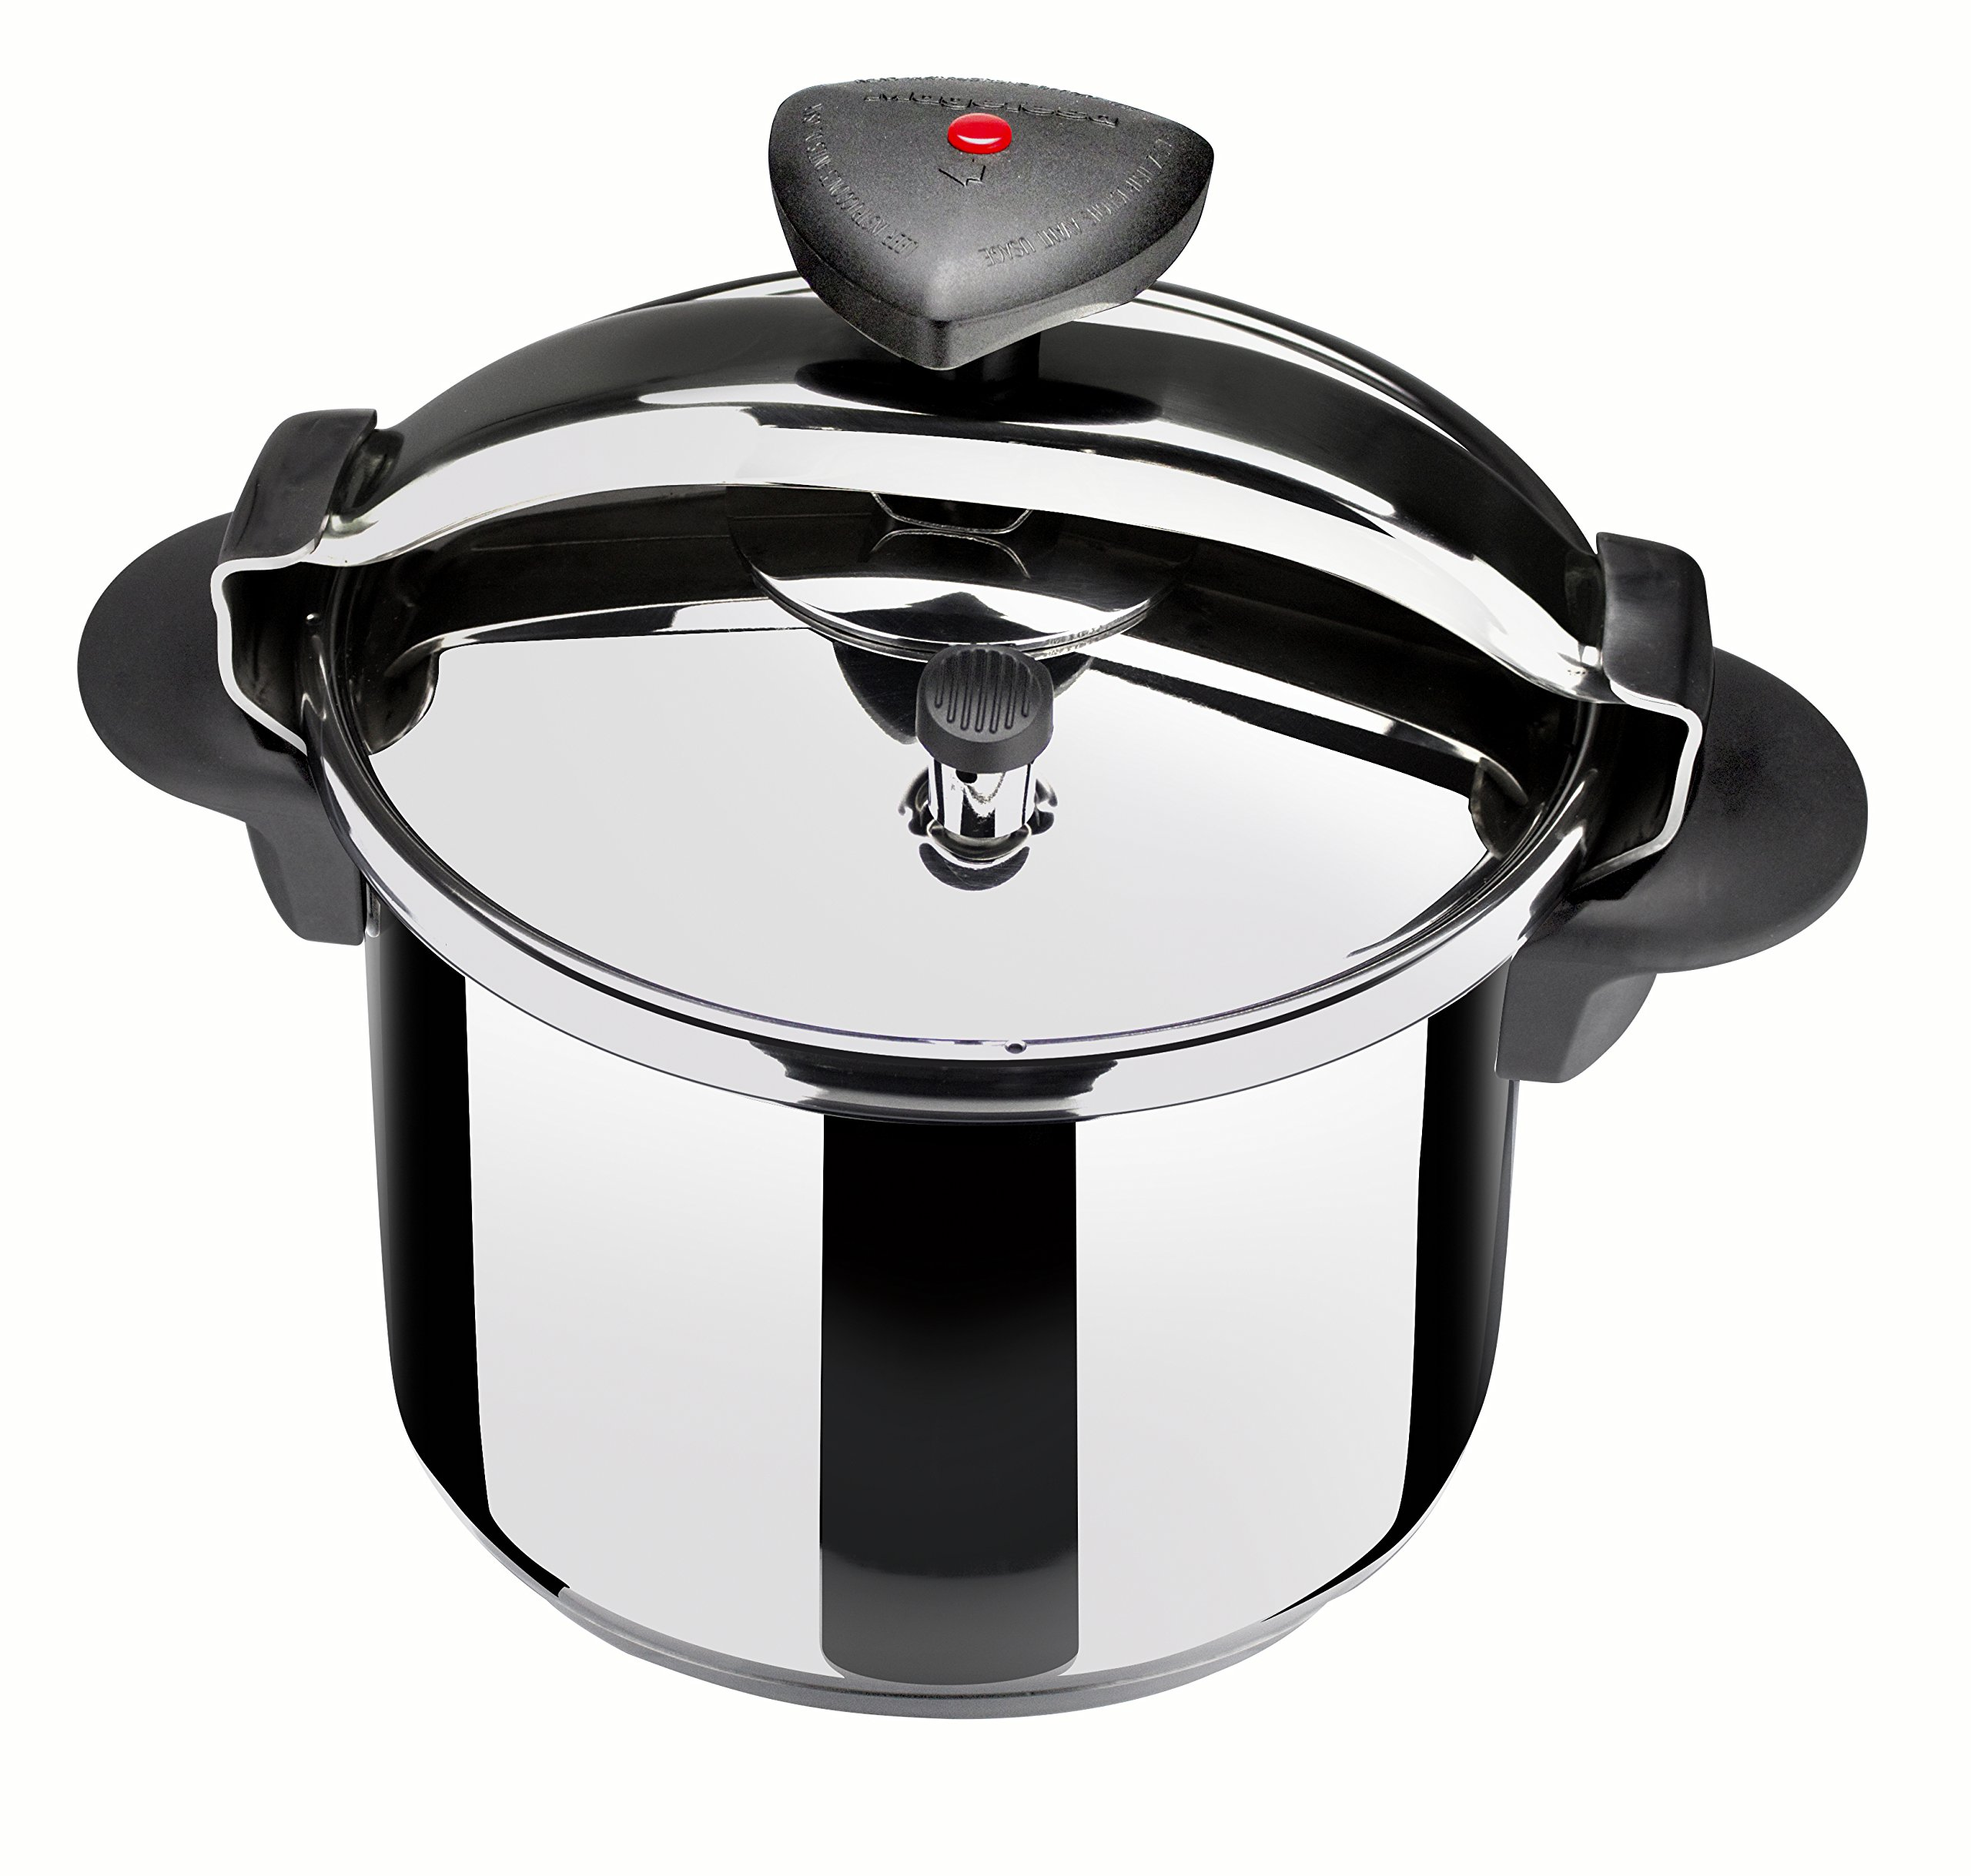 Magefesa 01OPSTACO08 Star R Stainless Steel F.P.C. Pressure Cooker, 8-Quart